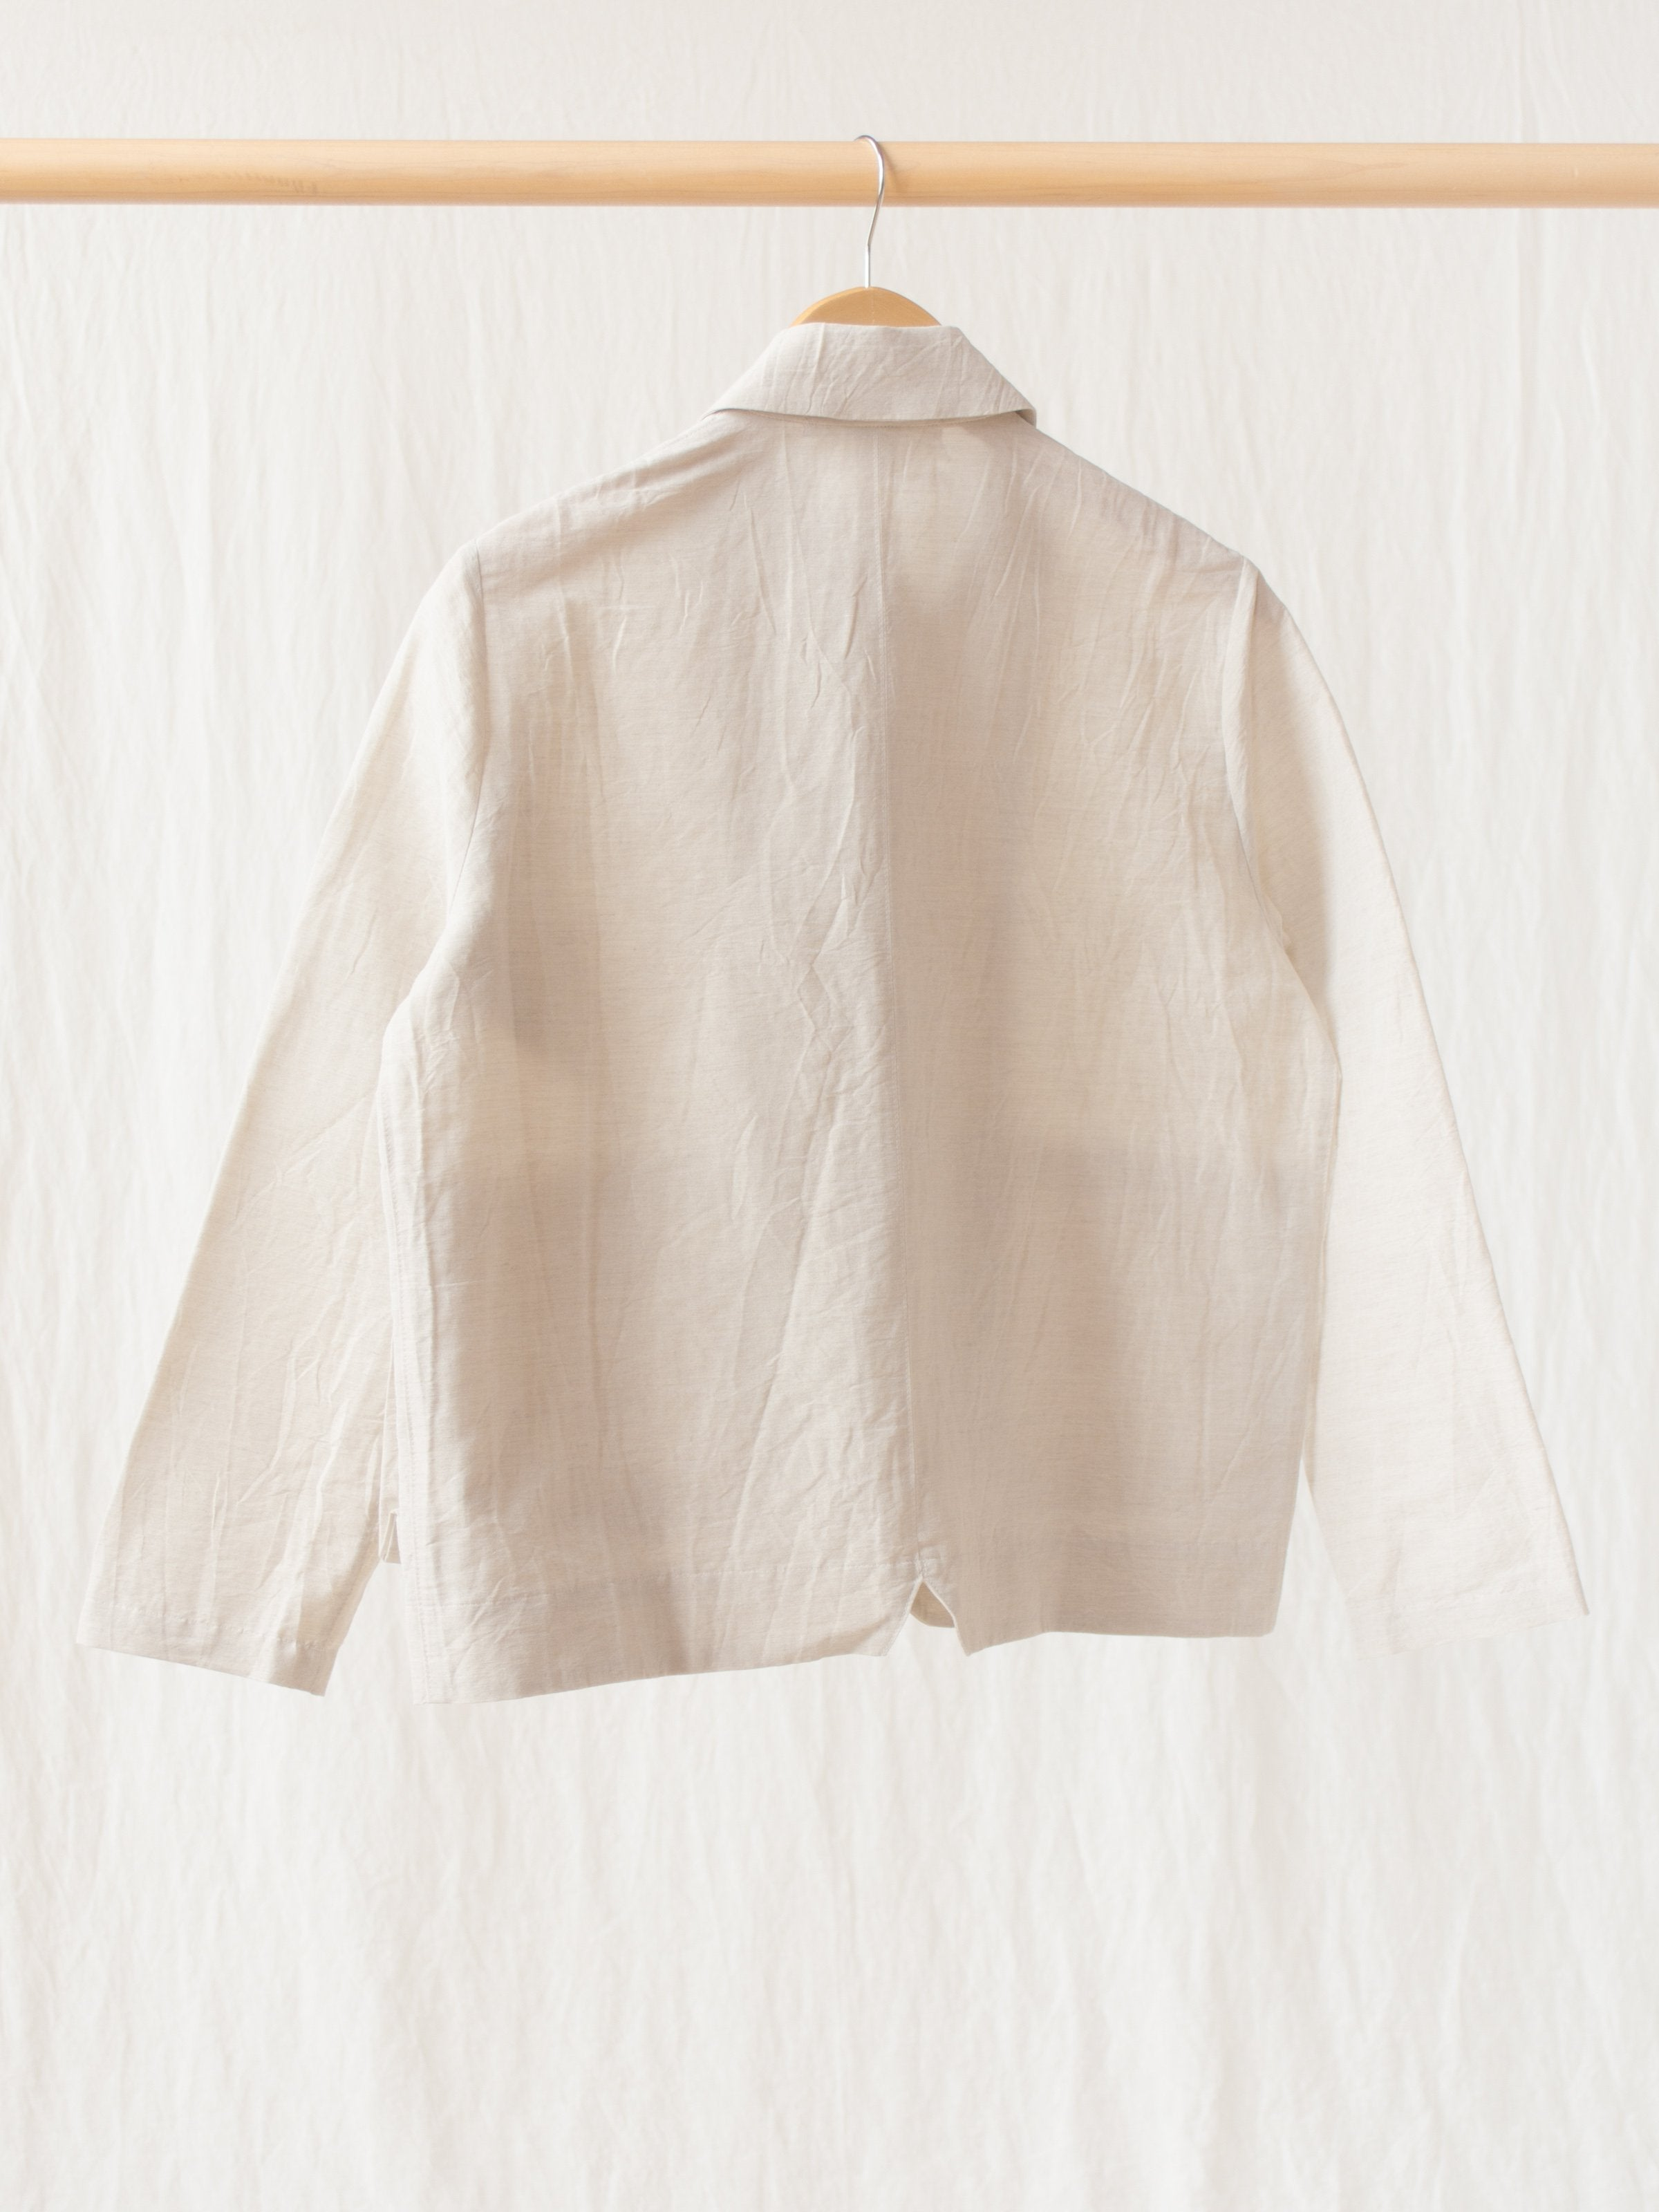 Namu Shop - Veritecoeur Sun-Dried Li / Co Cropped Jacket